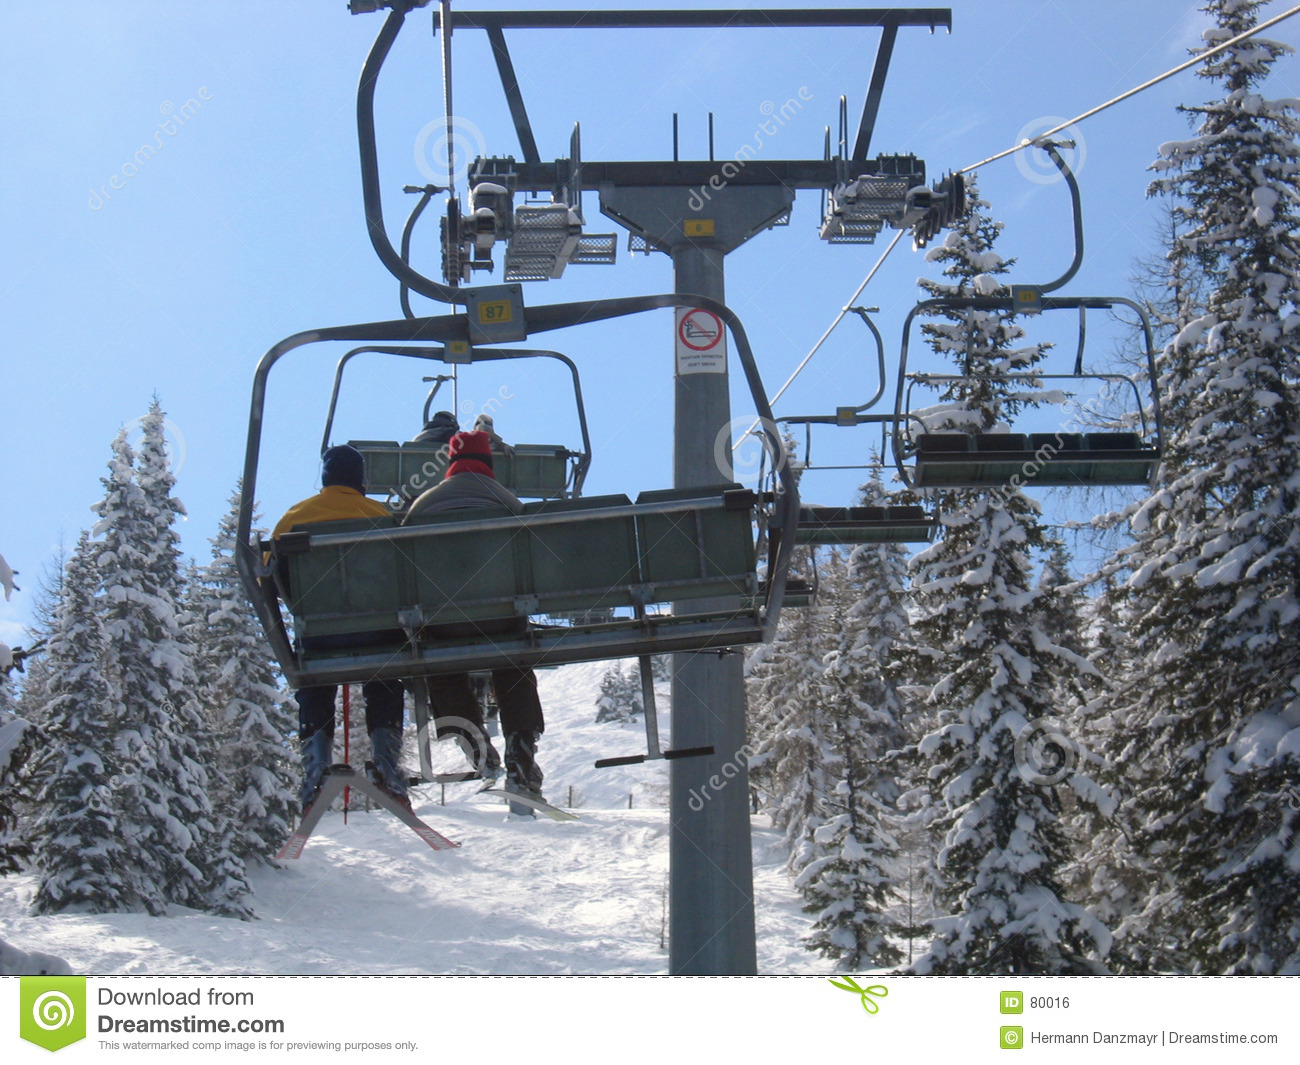 Austria chair lift skiing